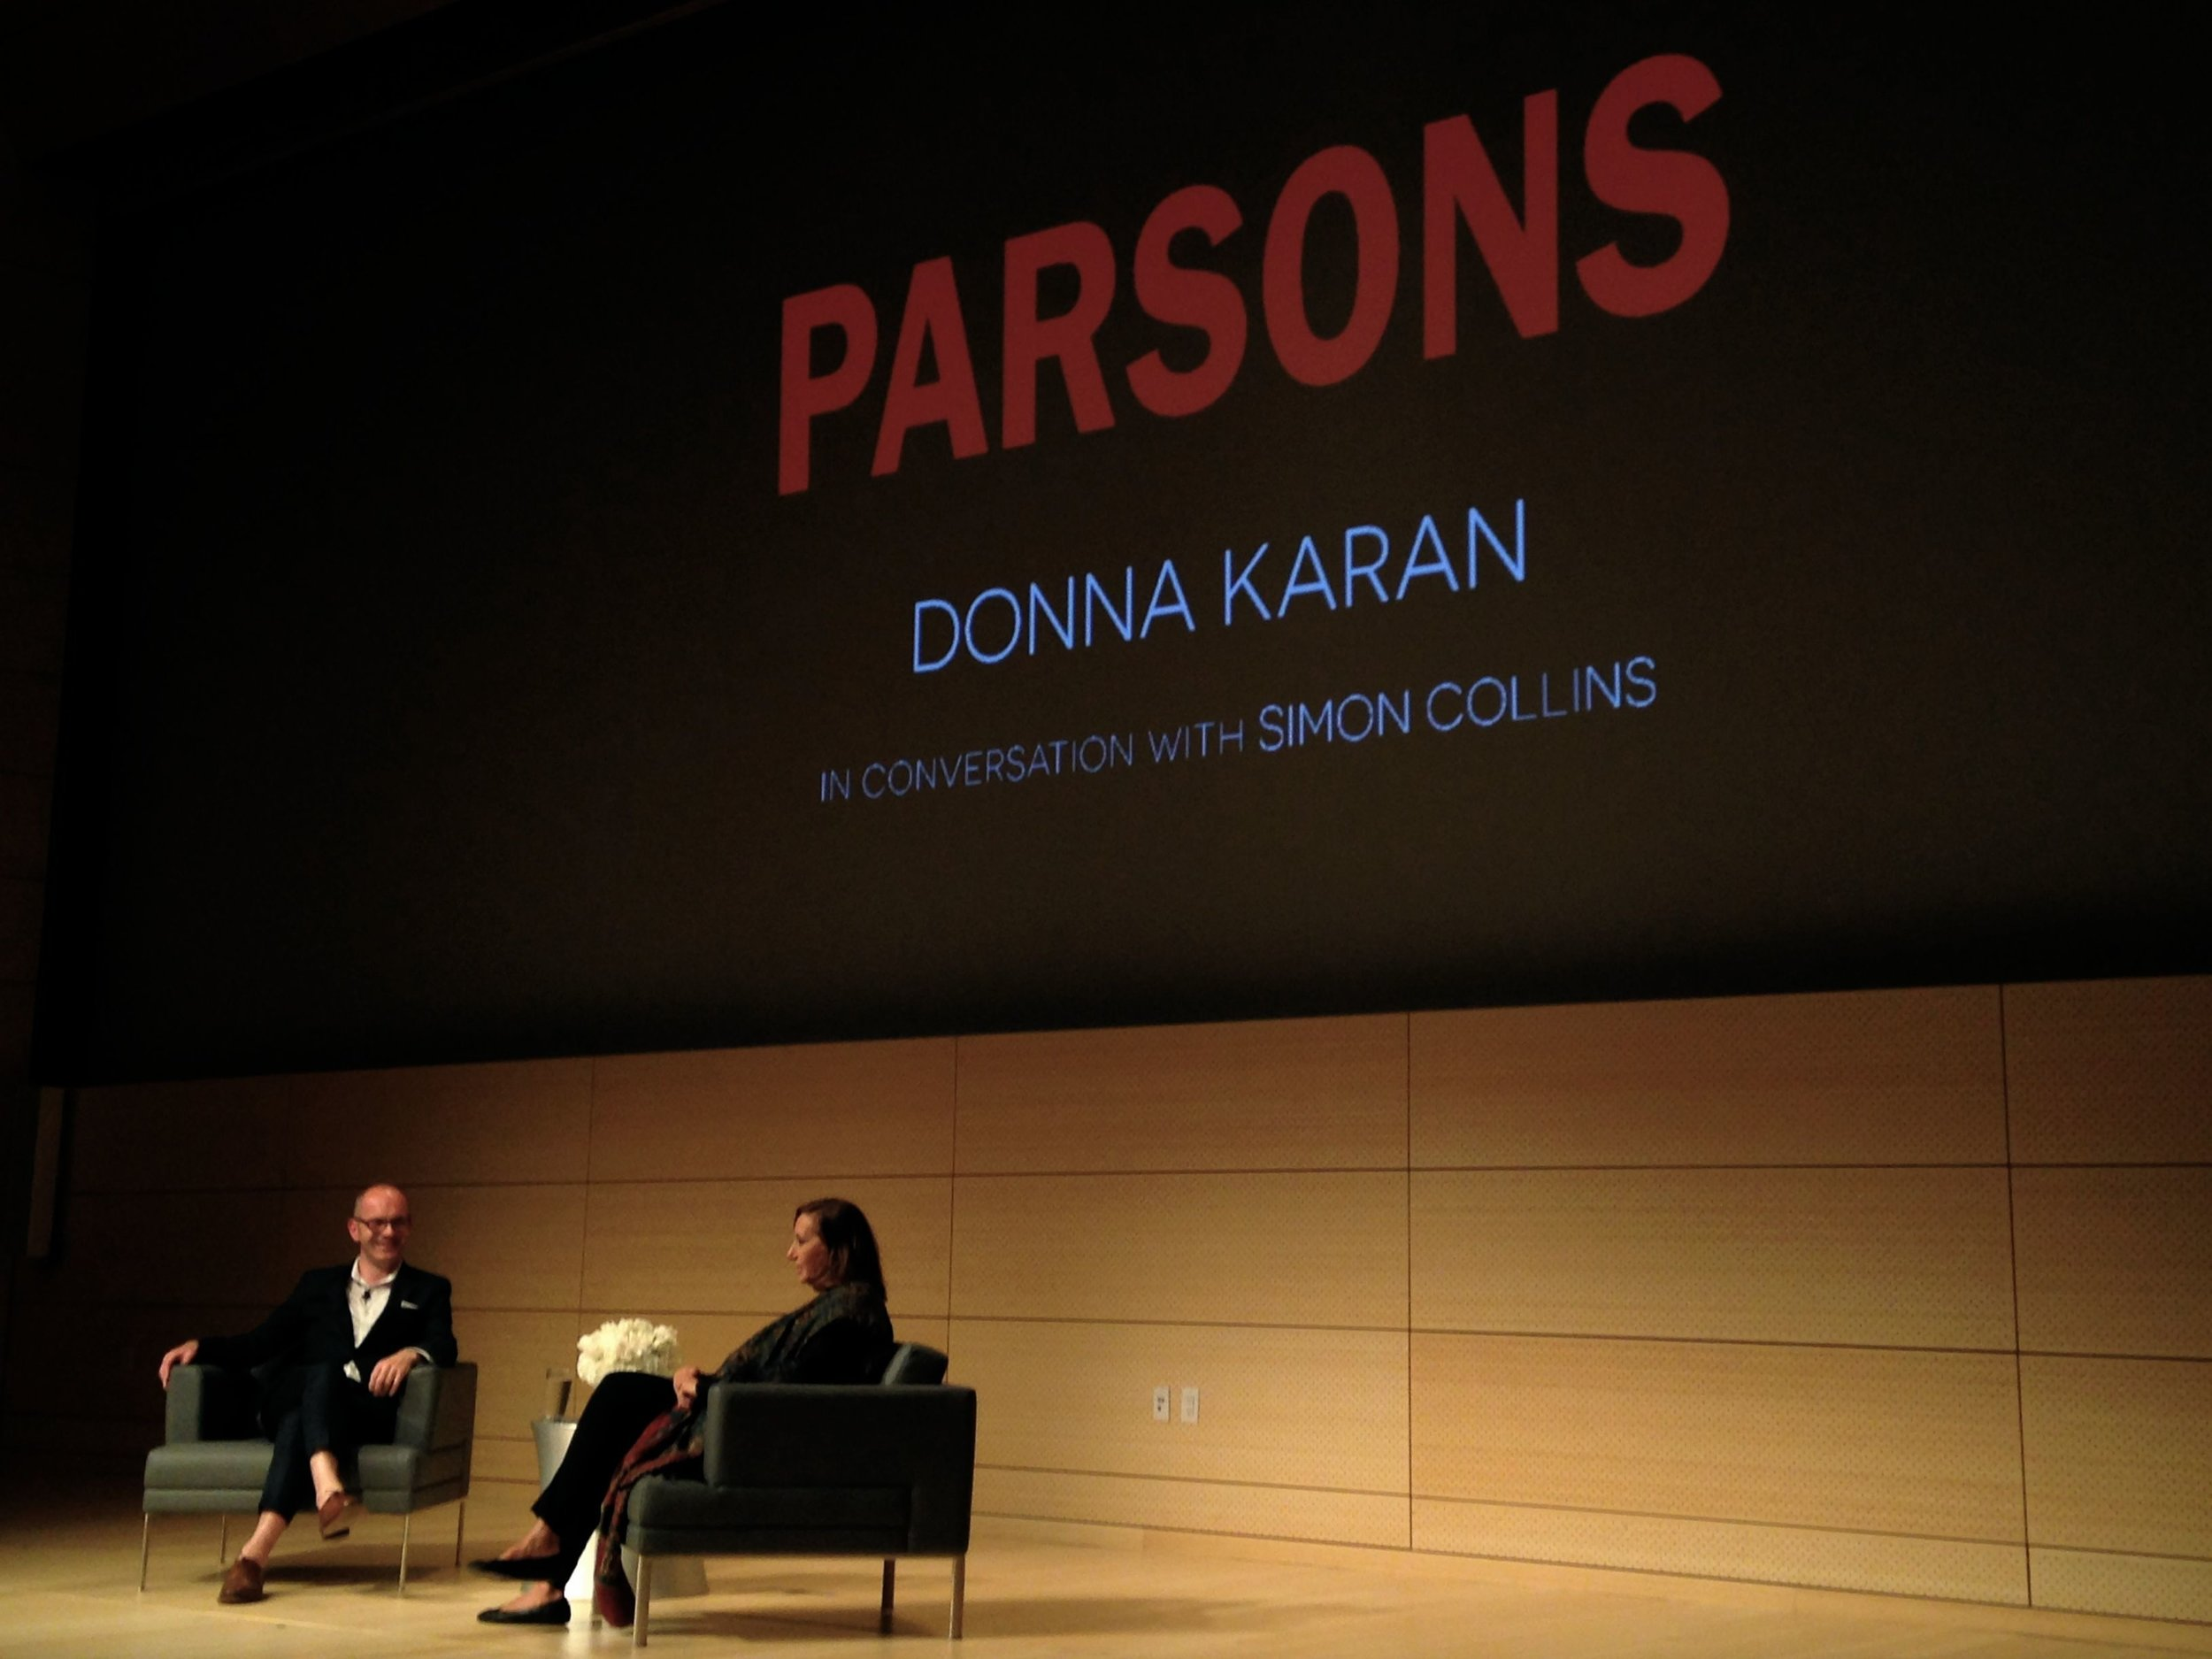 Donna Karan and Simon Collins at Parsons